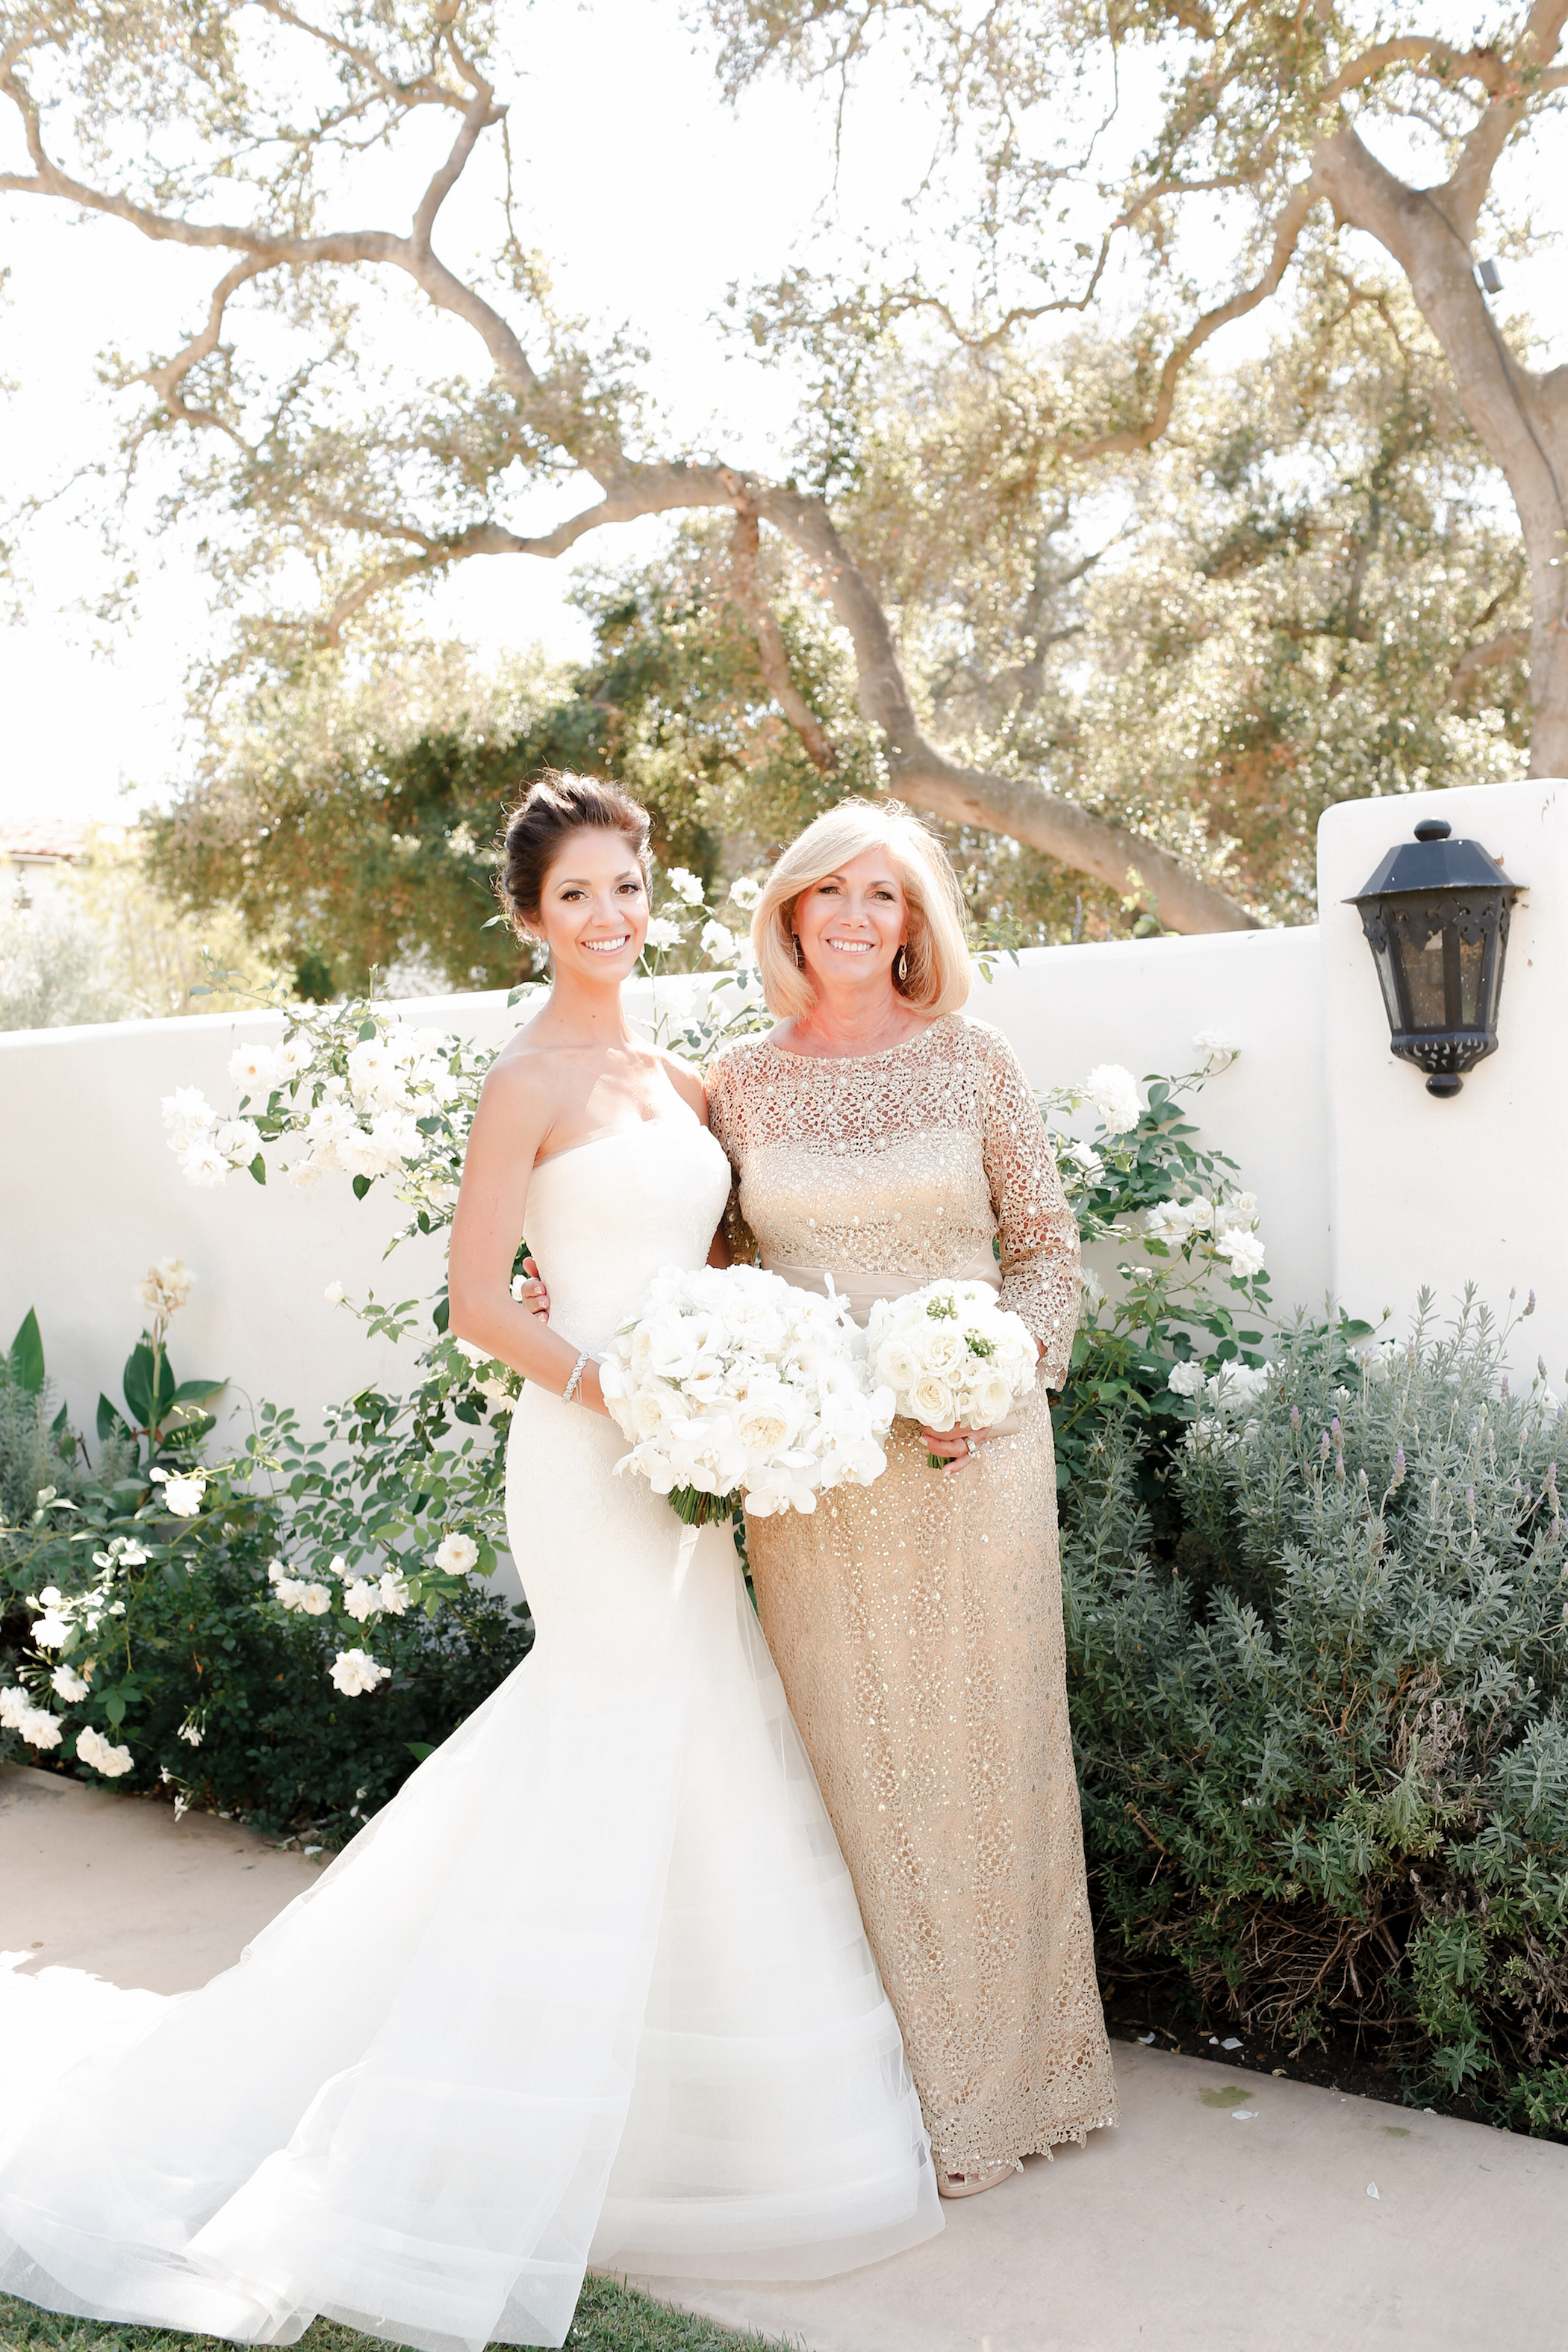 5 Tips to Help the Mother of the Bride Choose a Meaningful Ceremony Reading